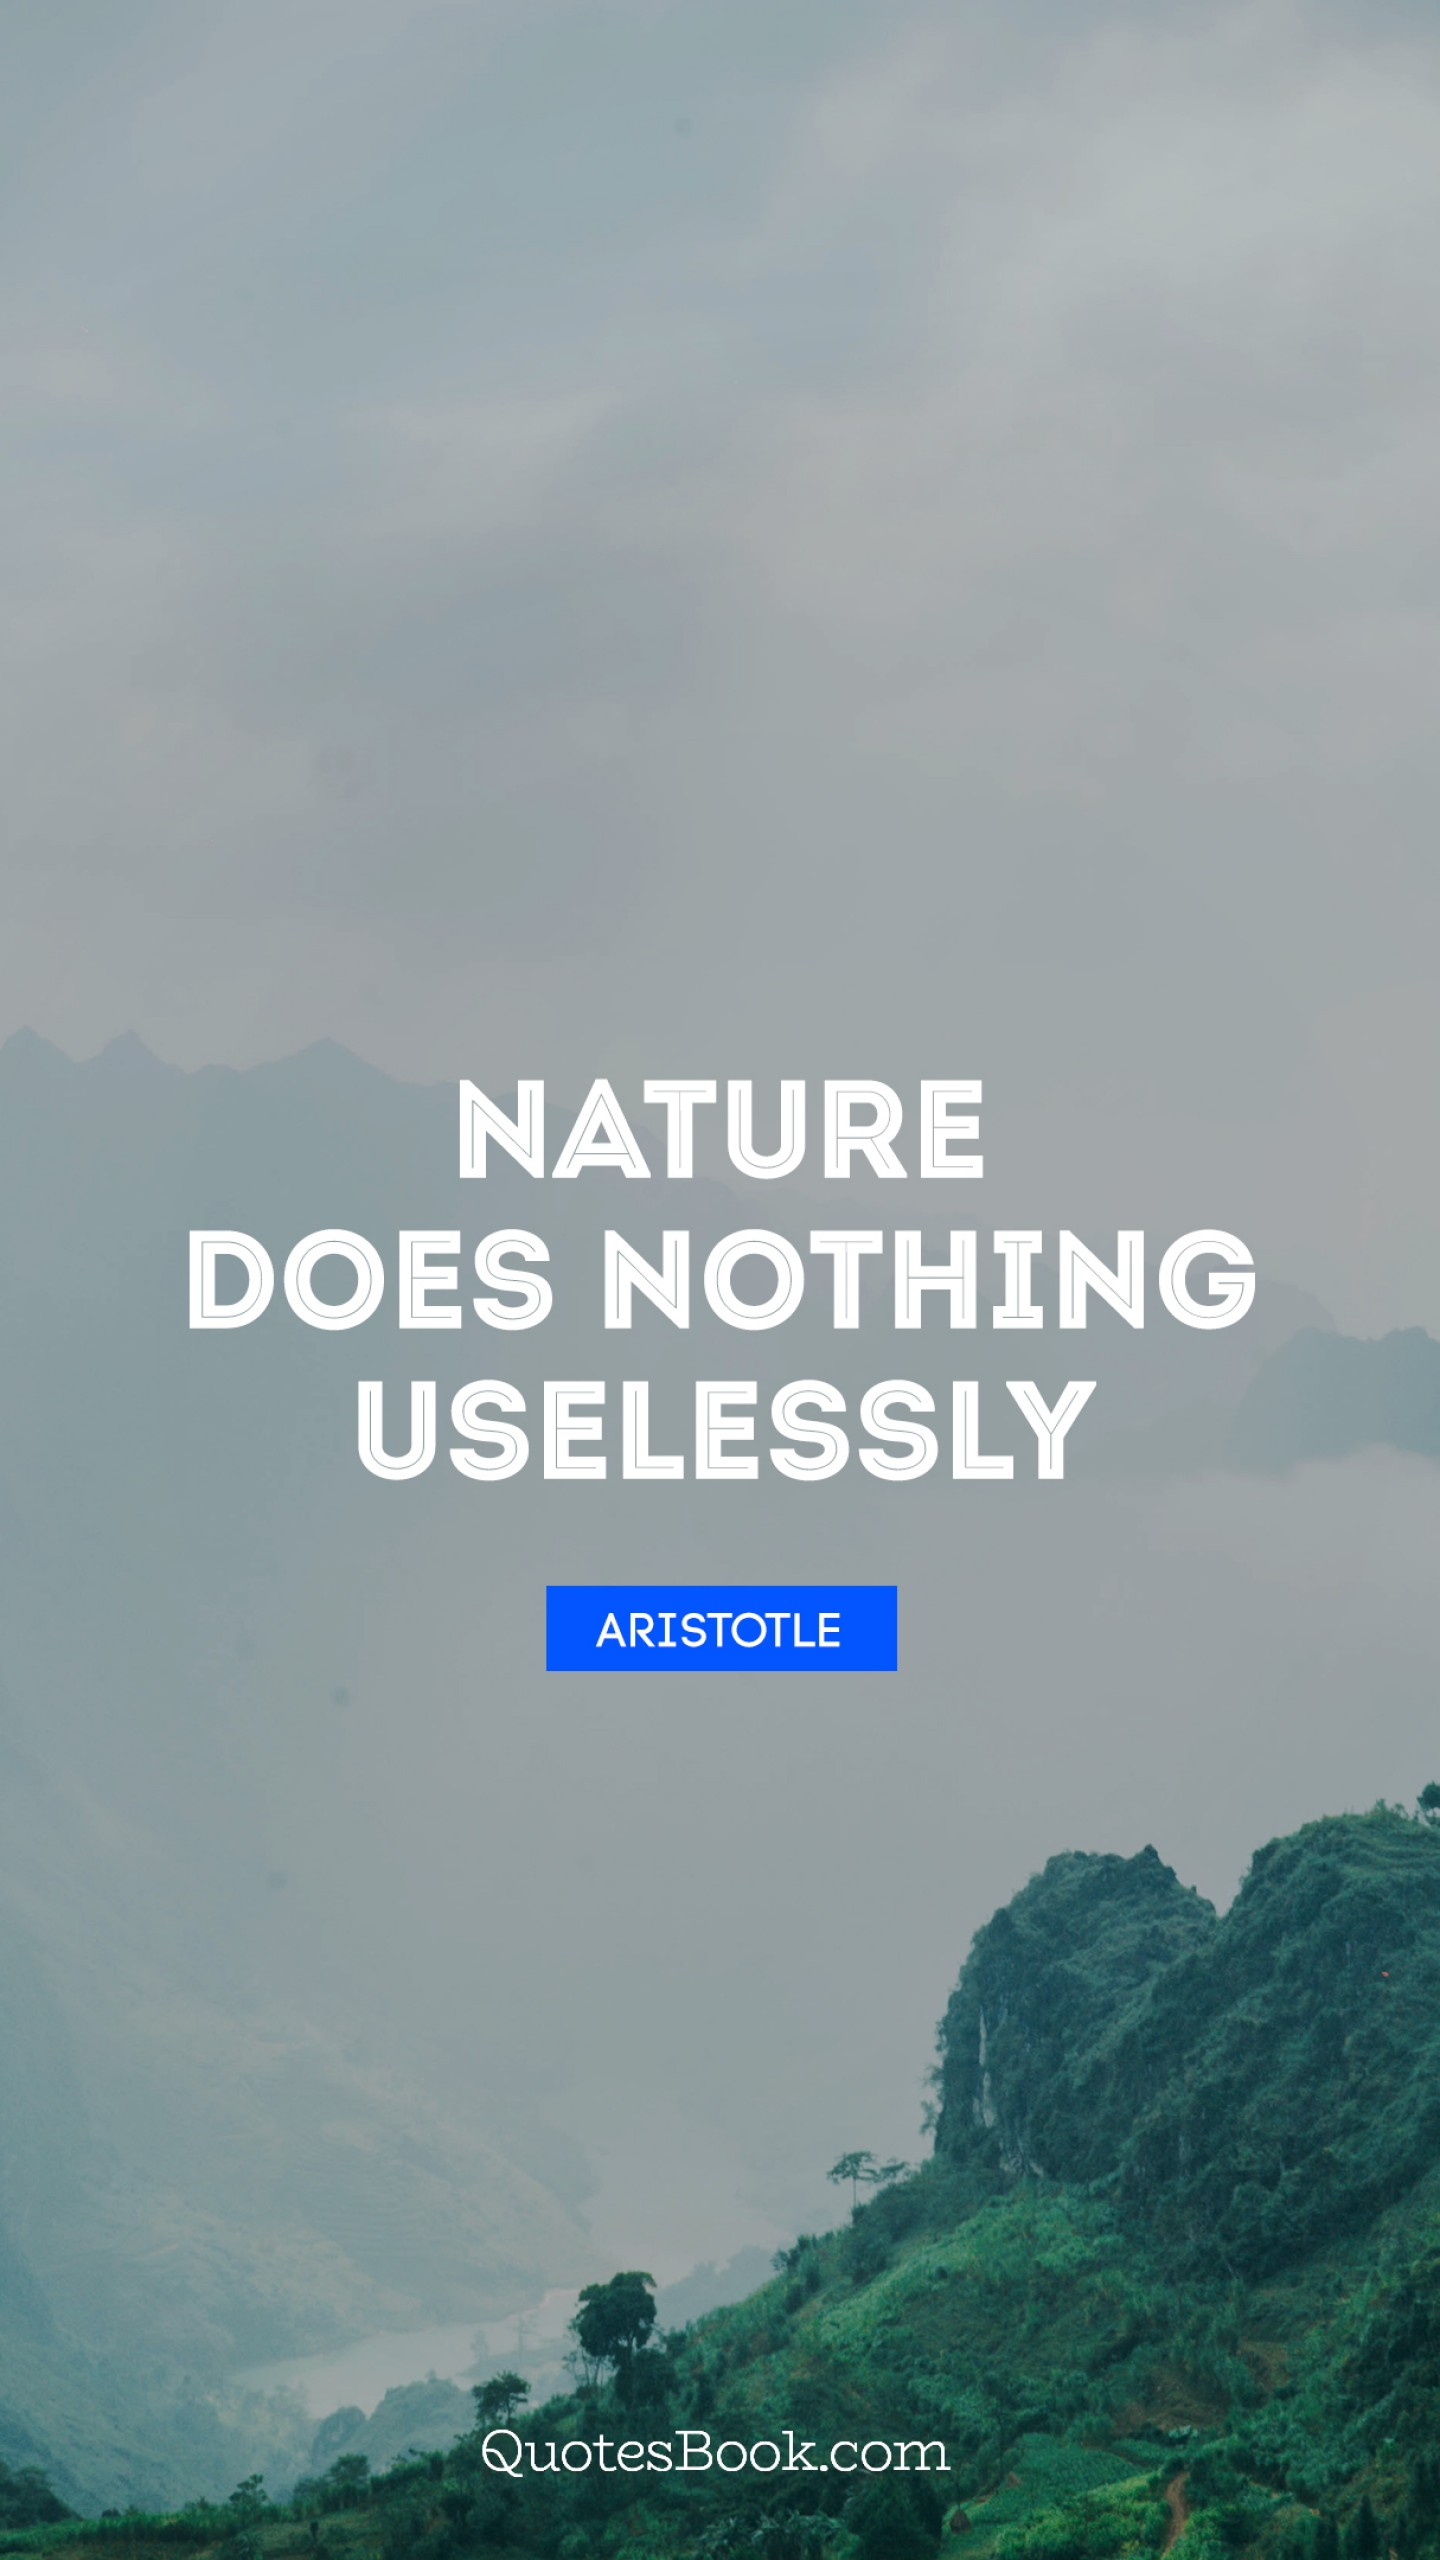 Nature does nothing uselessly. - Quote by Aristotle - QuotesBook